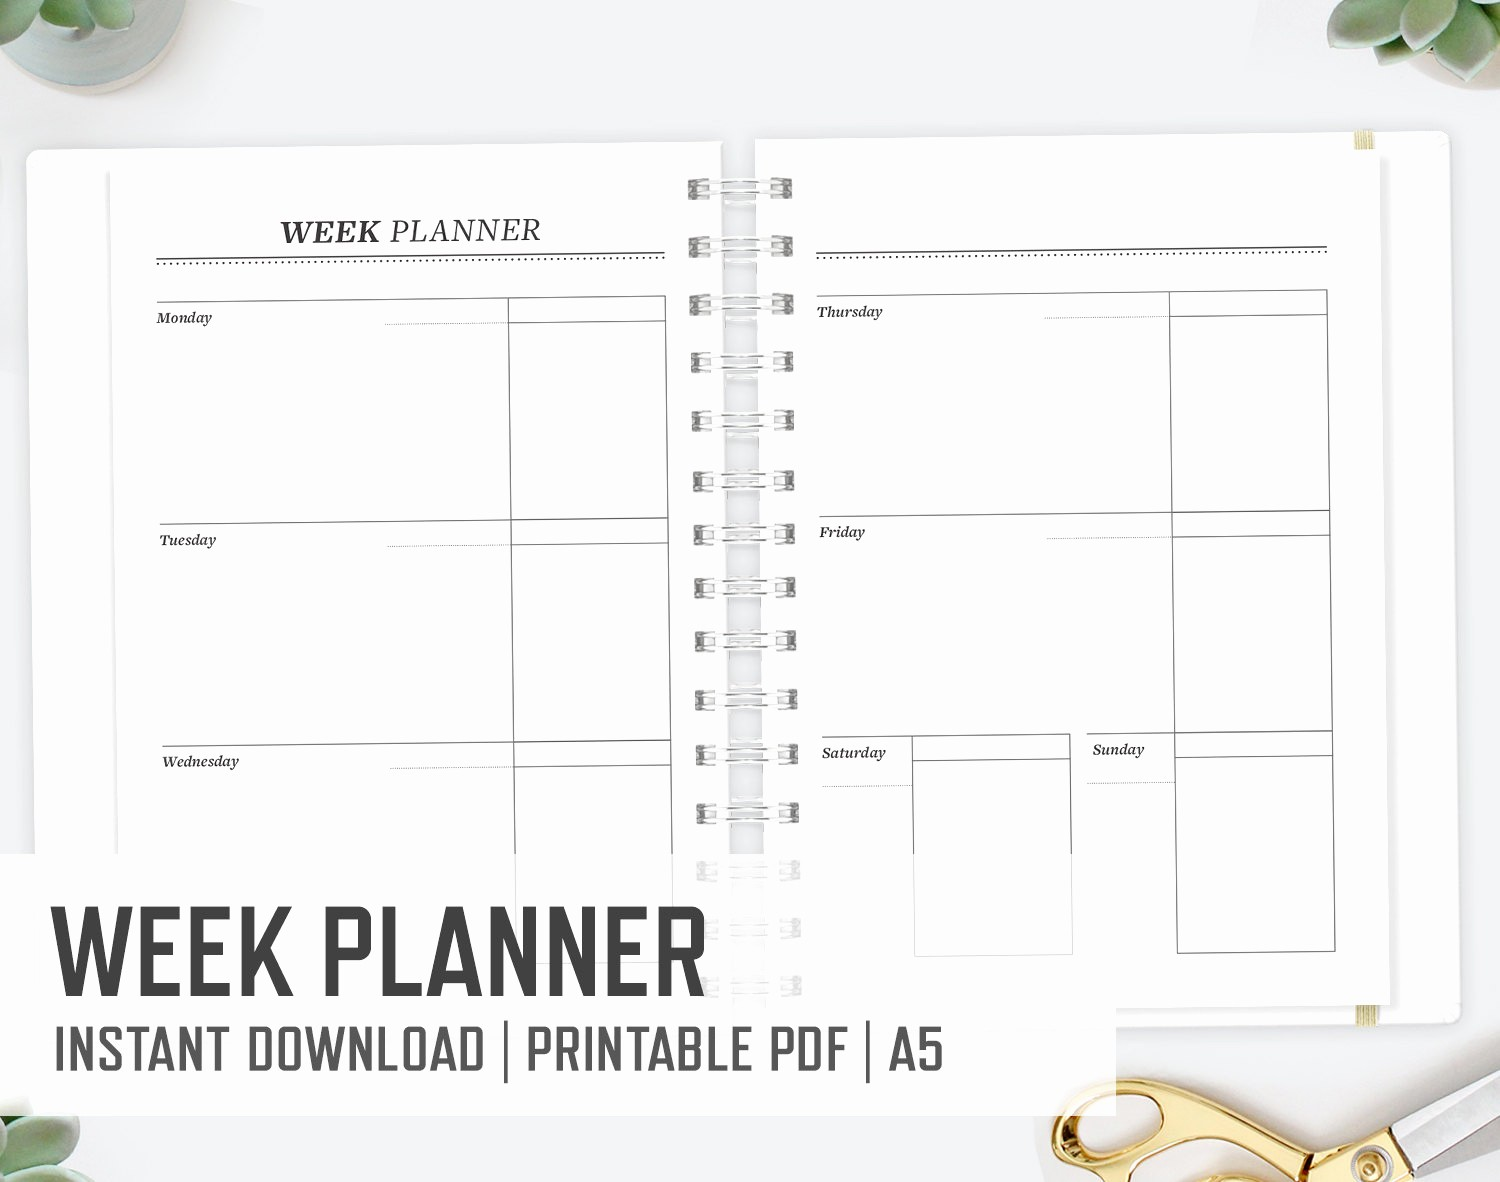 Days Of the Week Horizontal New Week Planner A5 Horizontal Boxes Planner Weekly